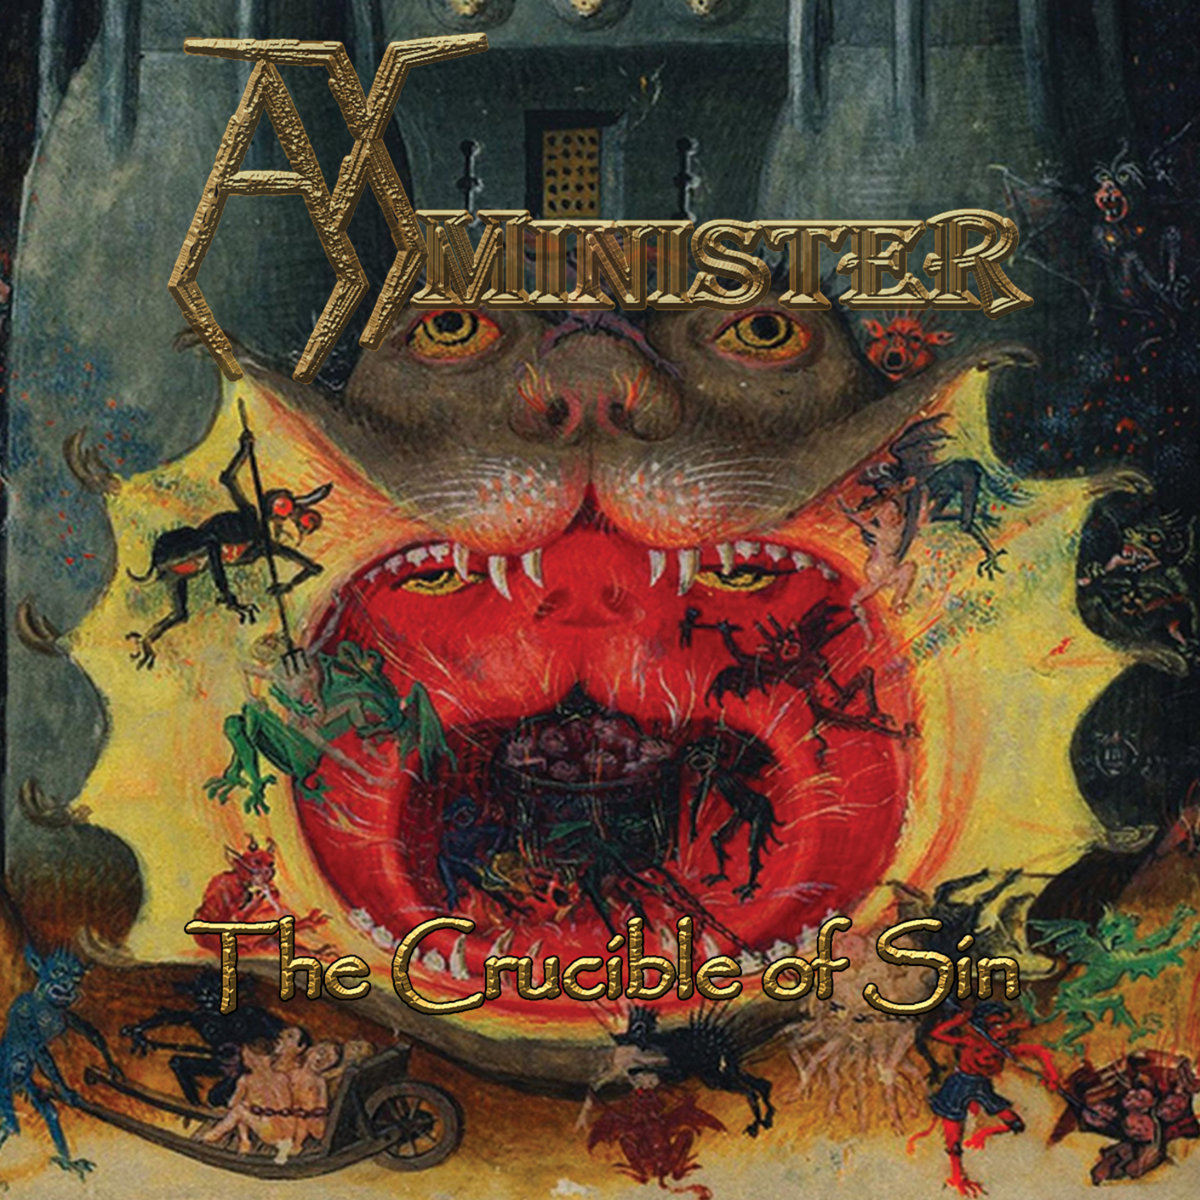 the crcible of sin du groupe Axminister